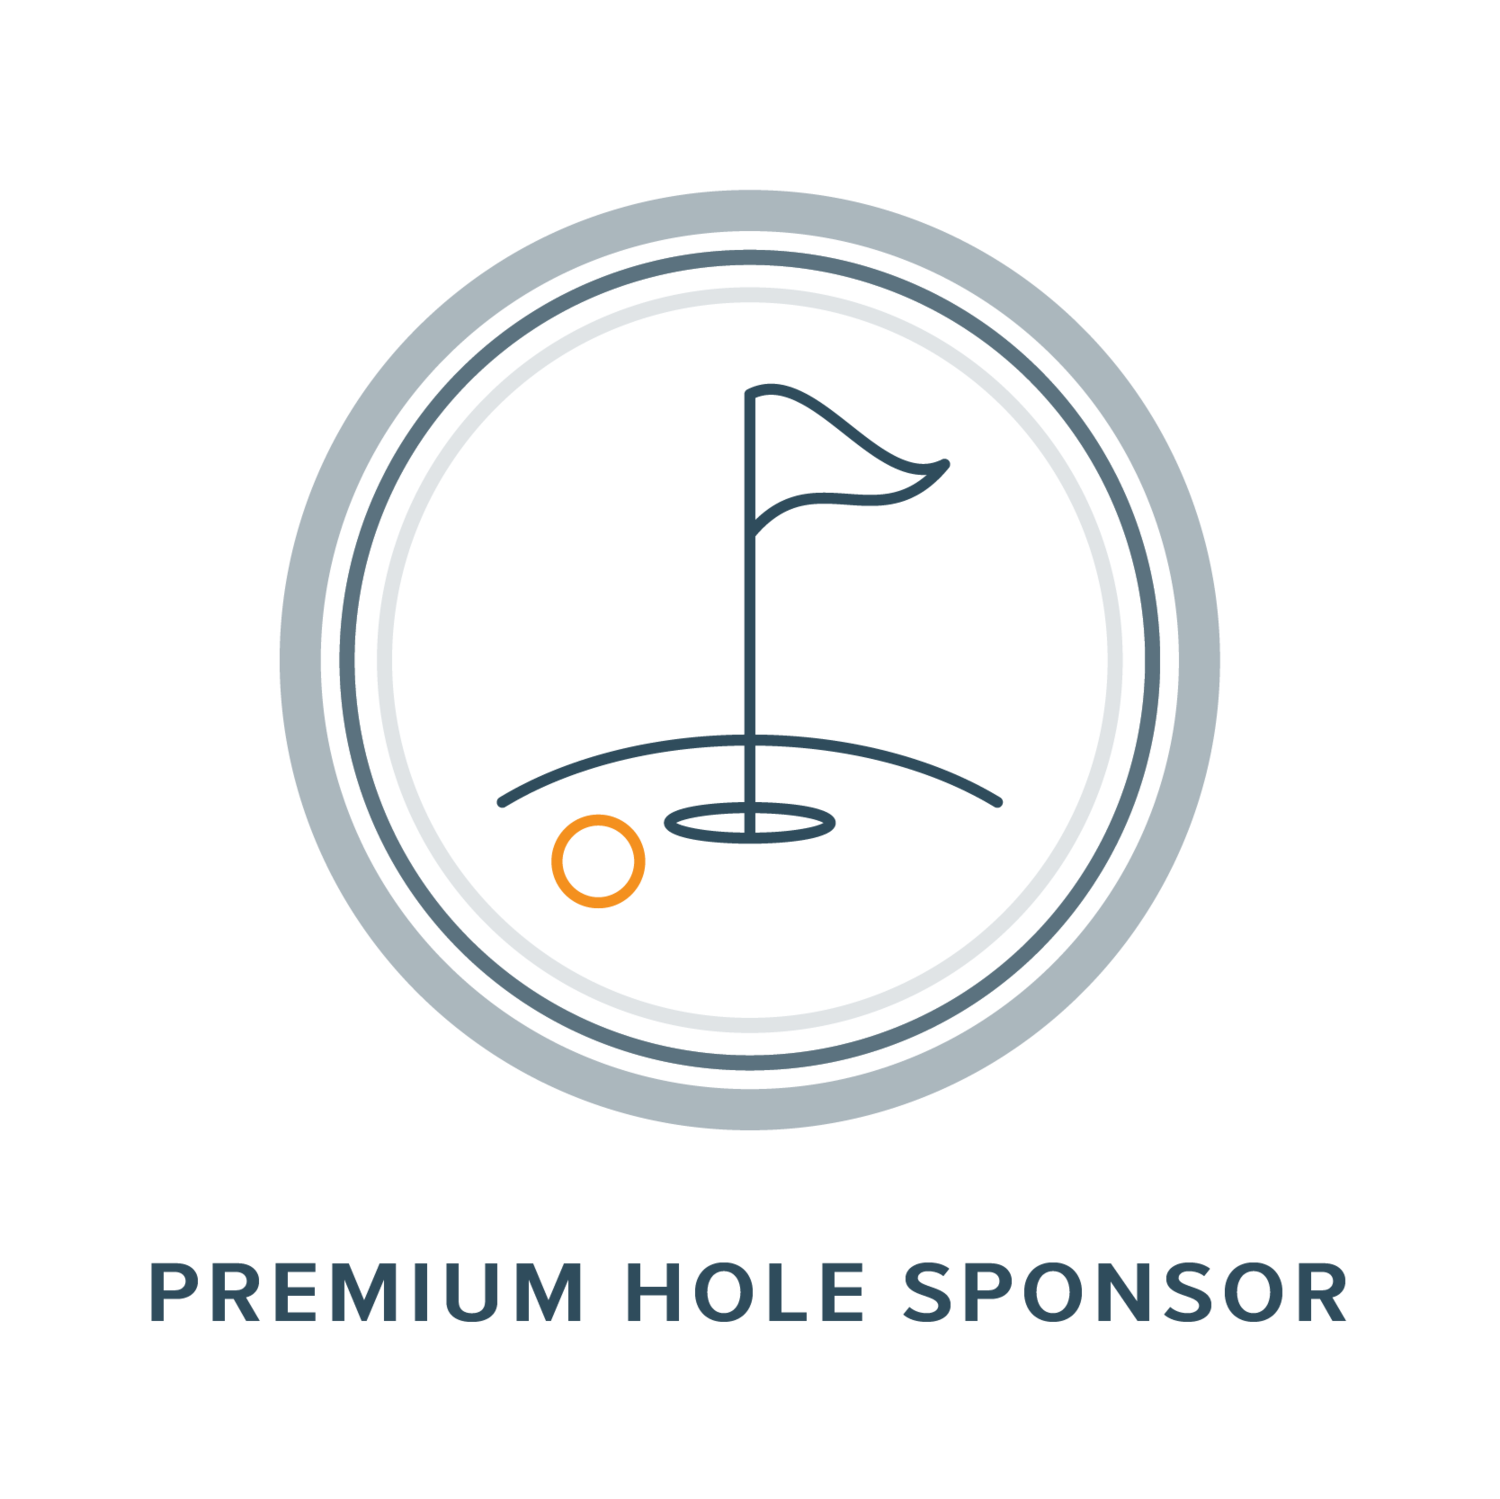 Premium Hole Sponsor (Long Drive or Closest to the Pin)